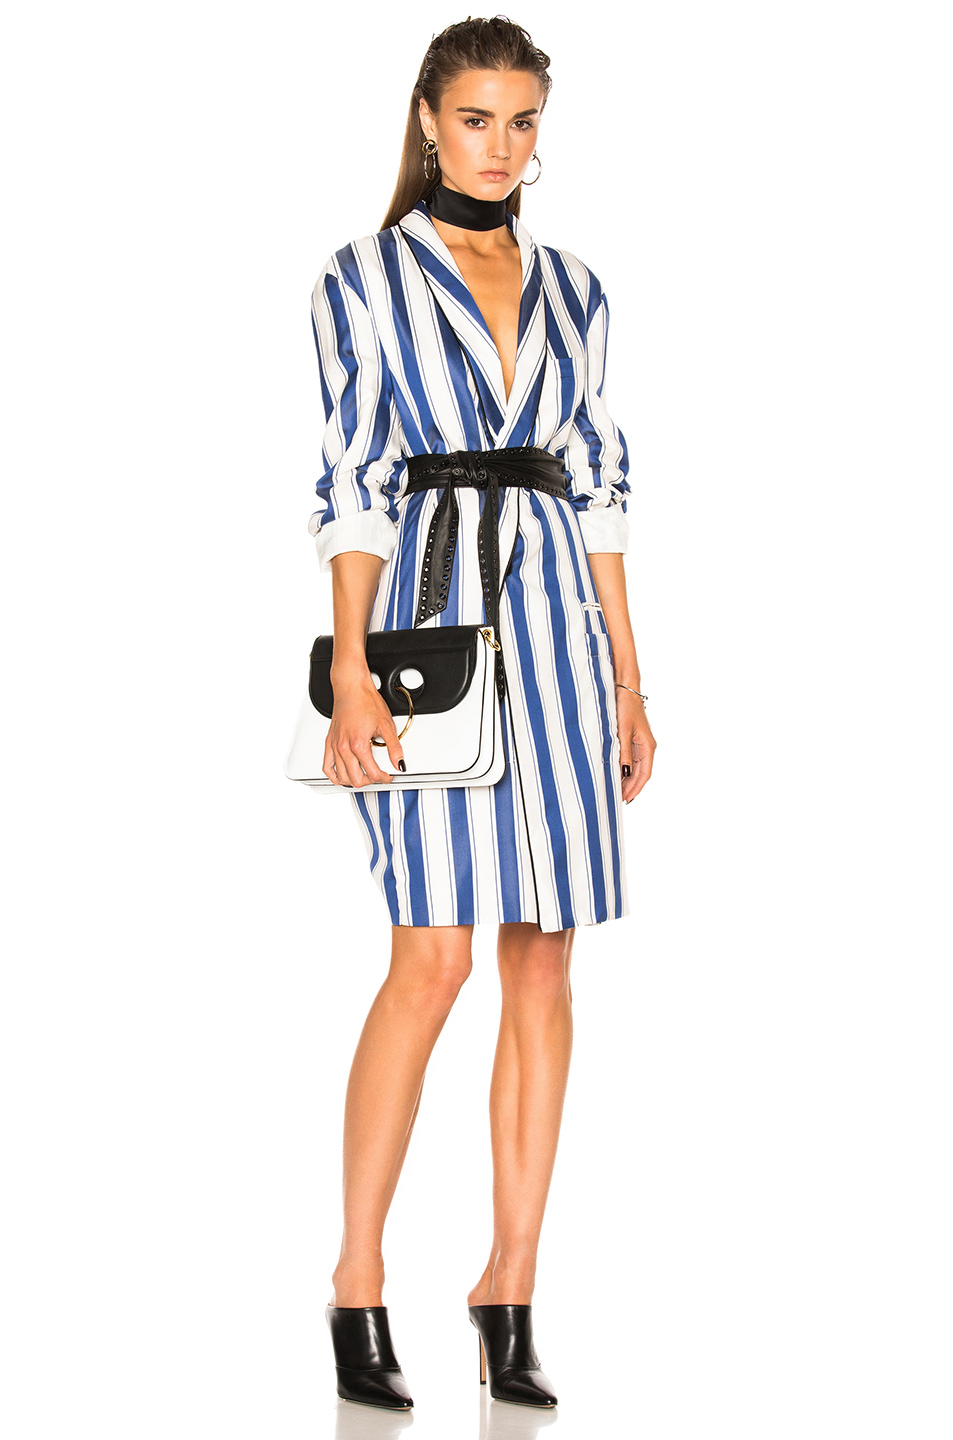 Haider Ackermann Oversized Coat in Blue,Stripes,White